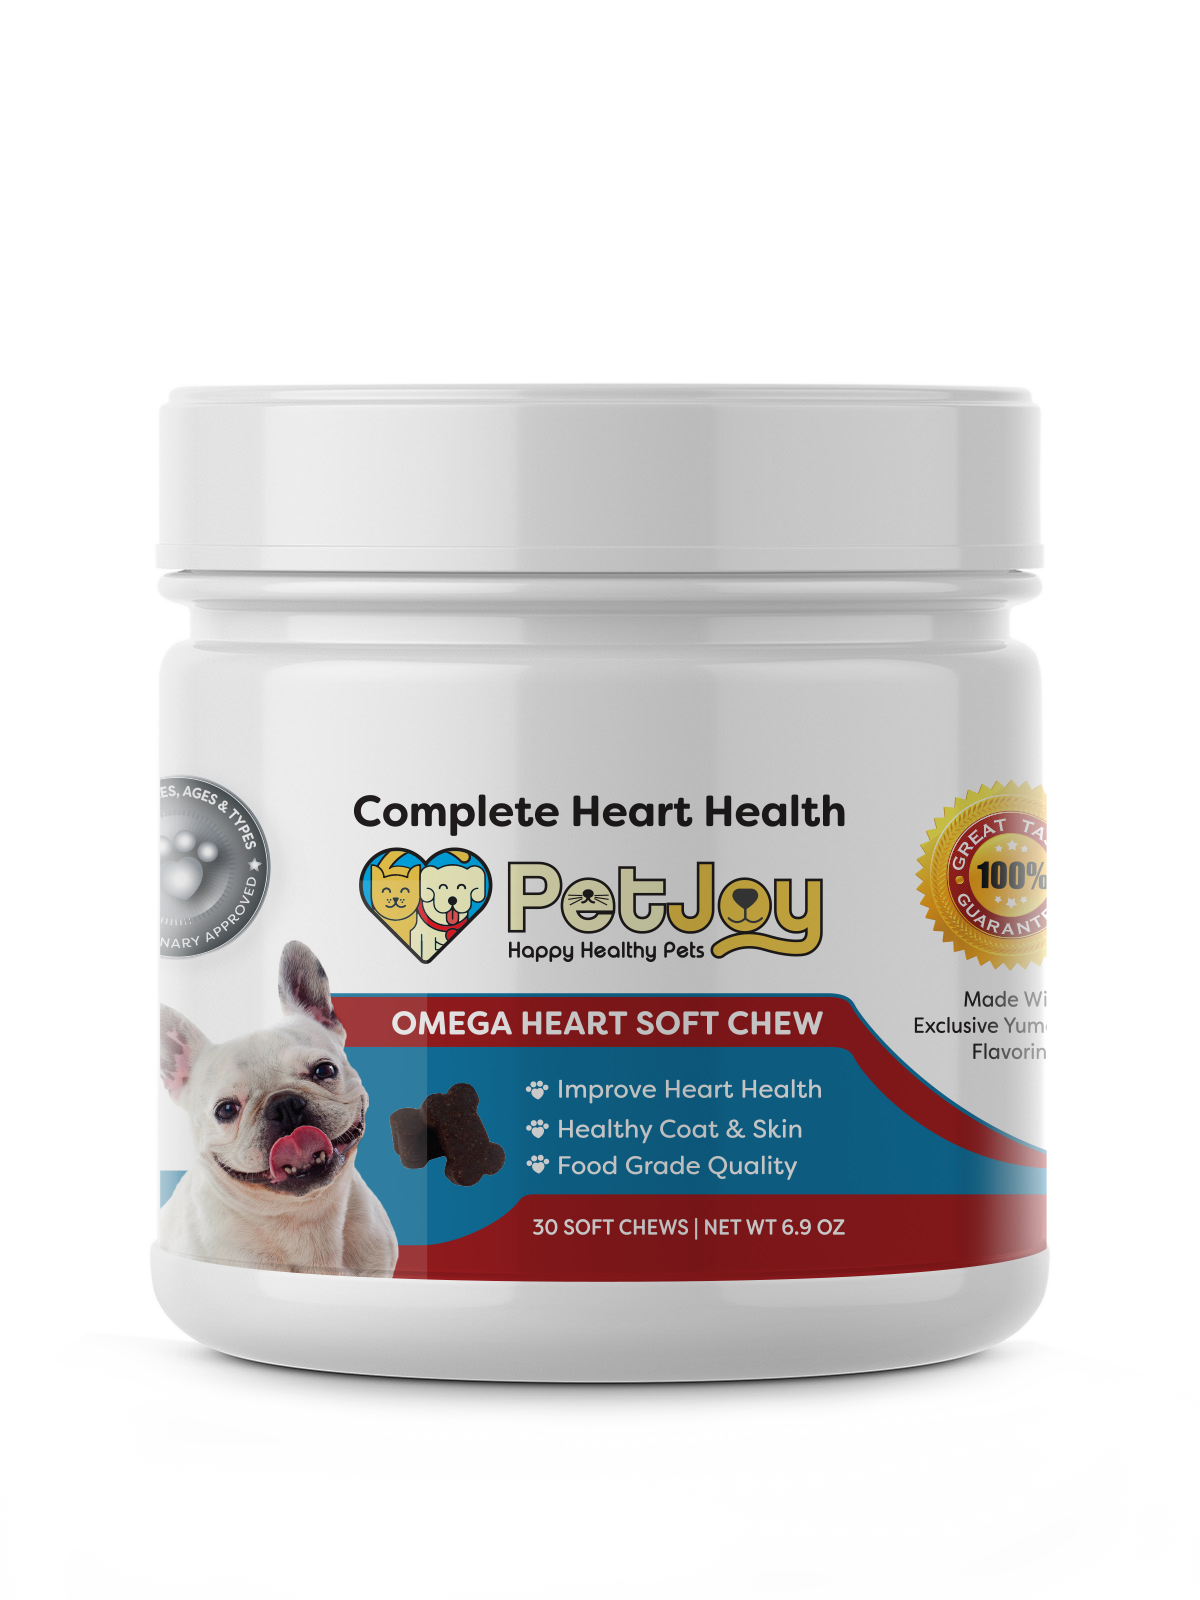 Complete Heart Health